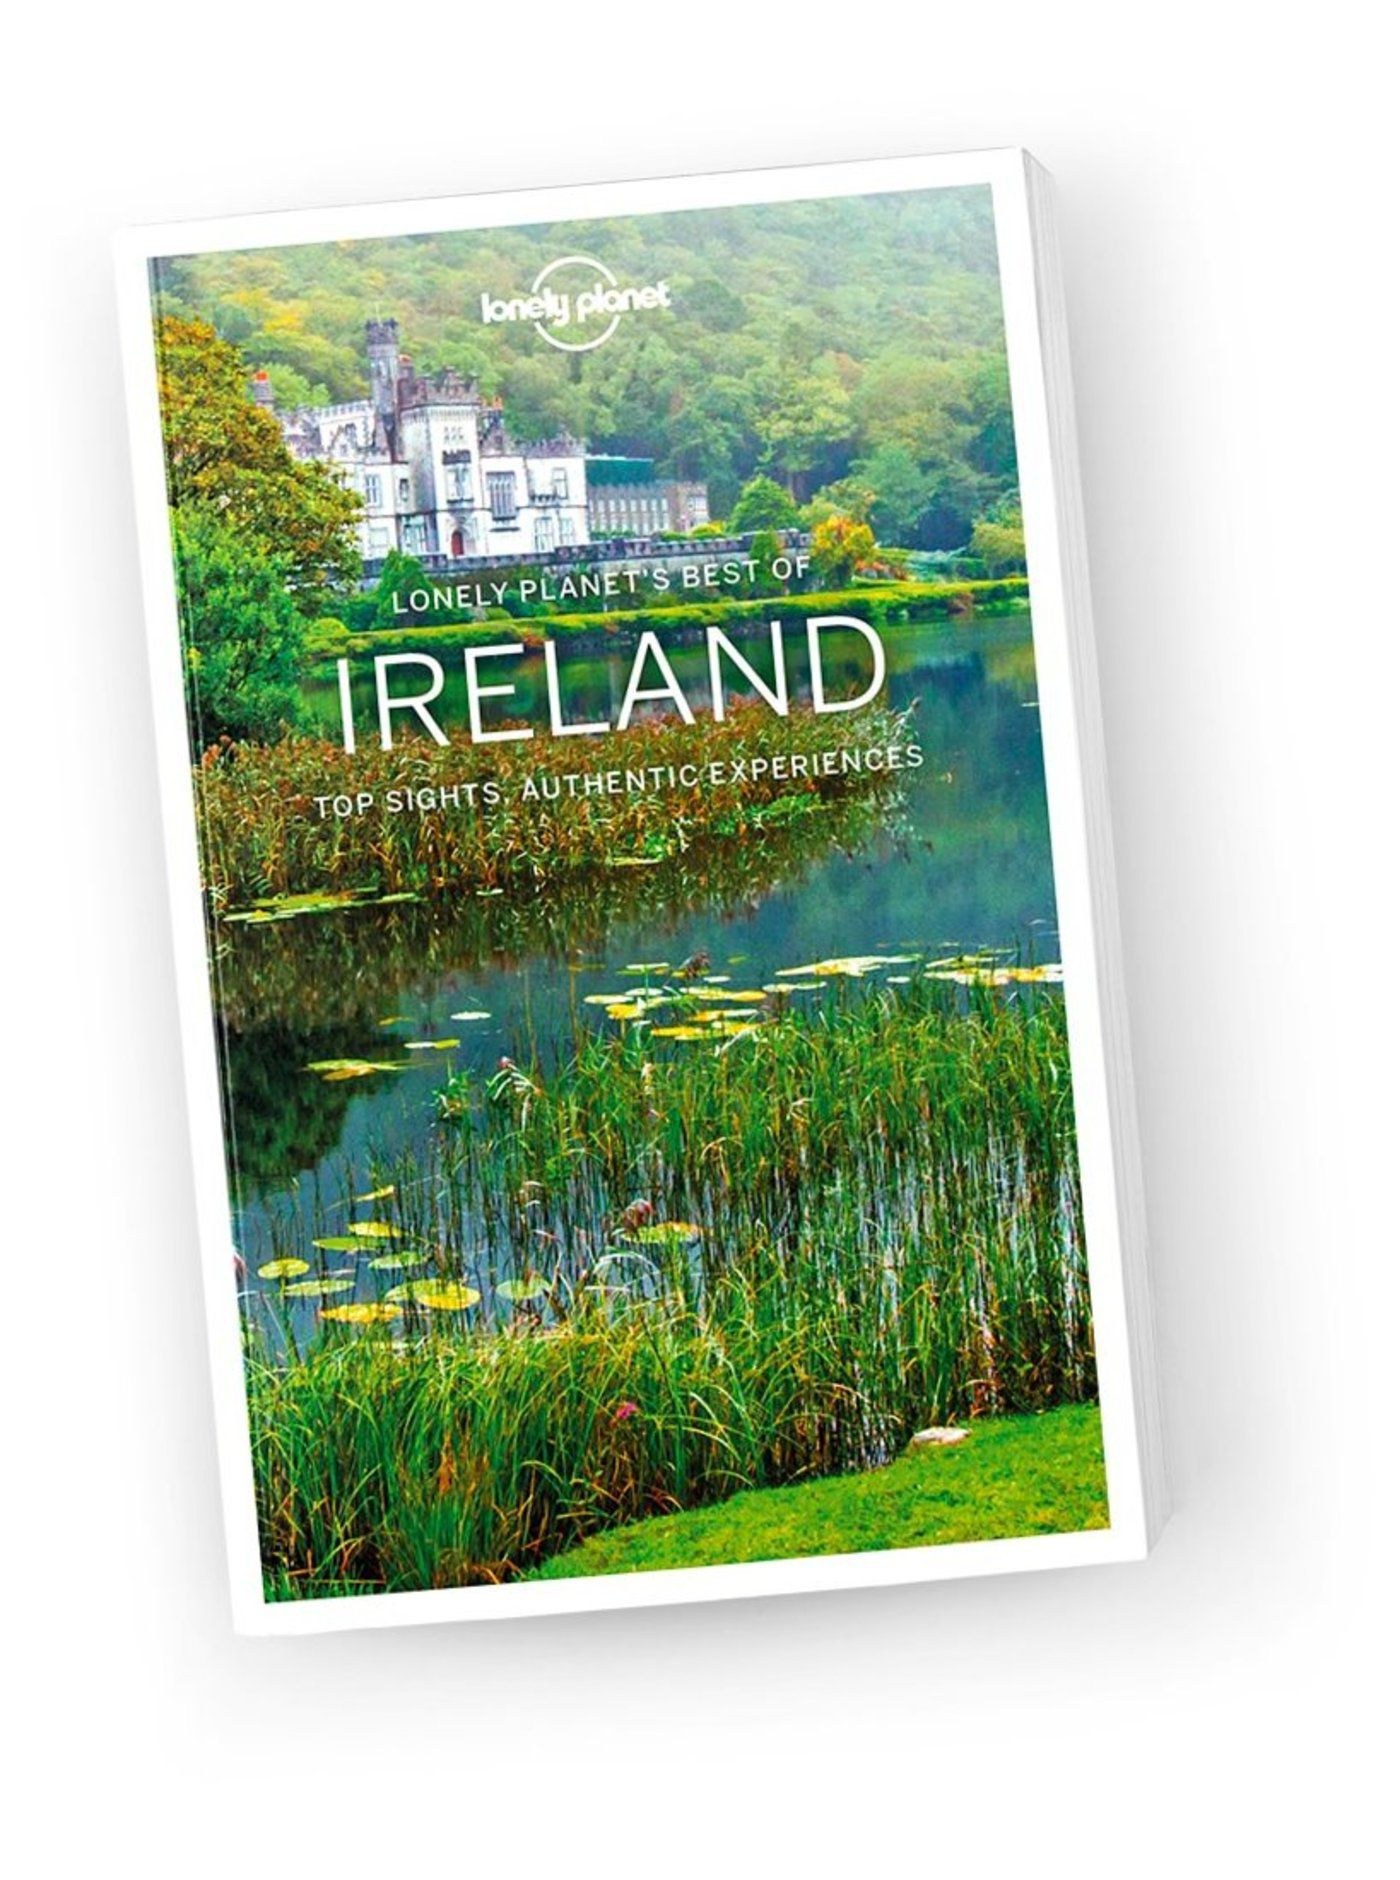 Best of Ireland travel guide - 3rd edition